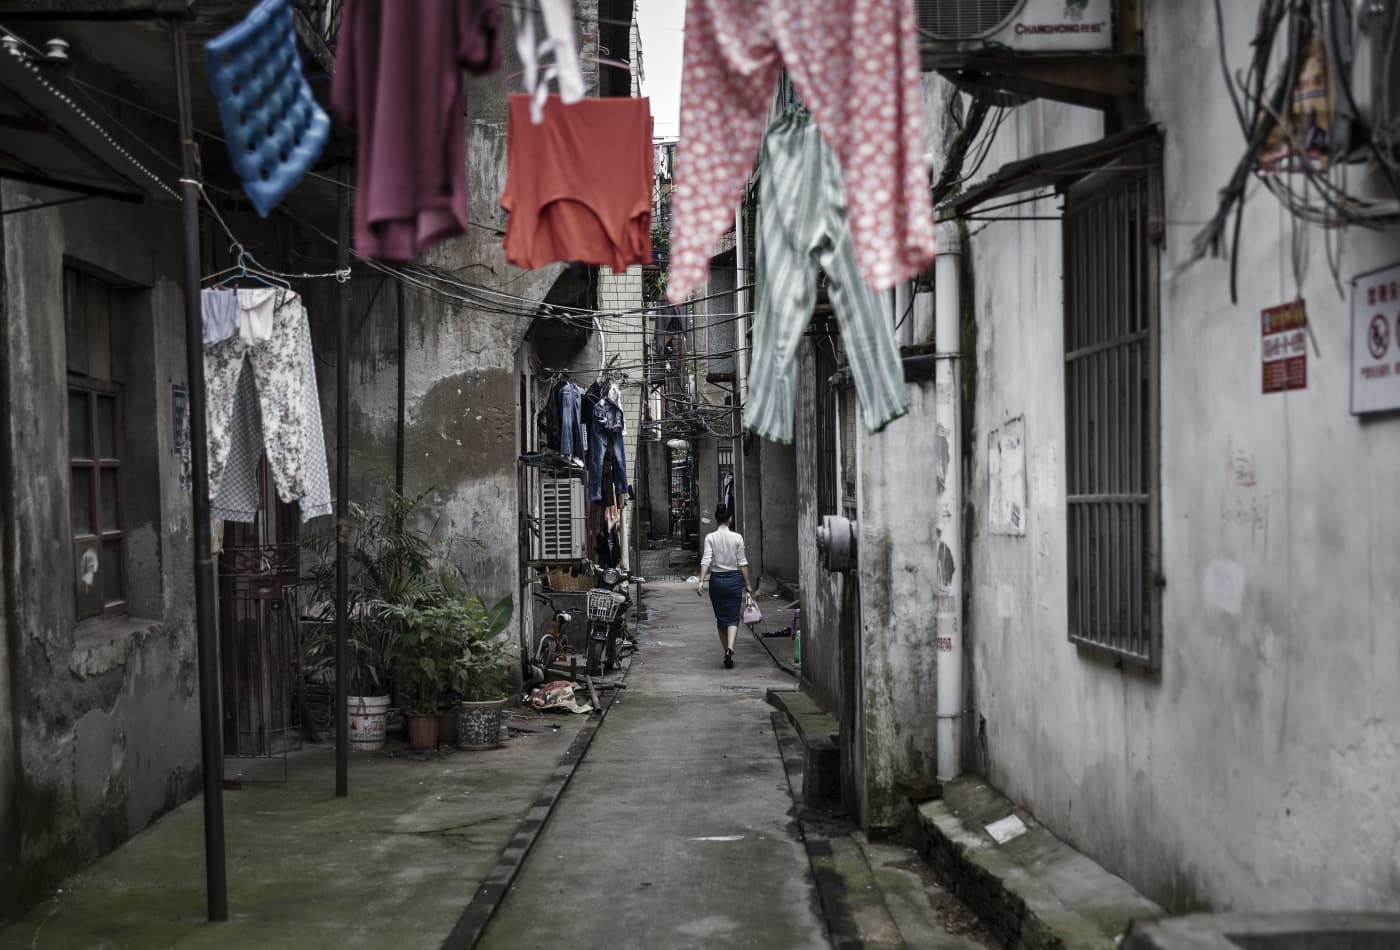 Chinese court rules that a woman's housework is worth $128 a month